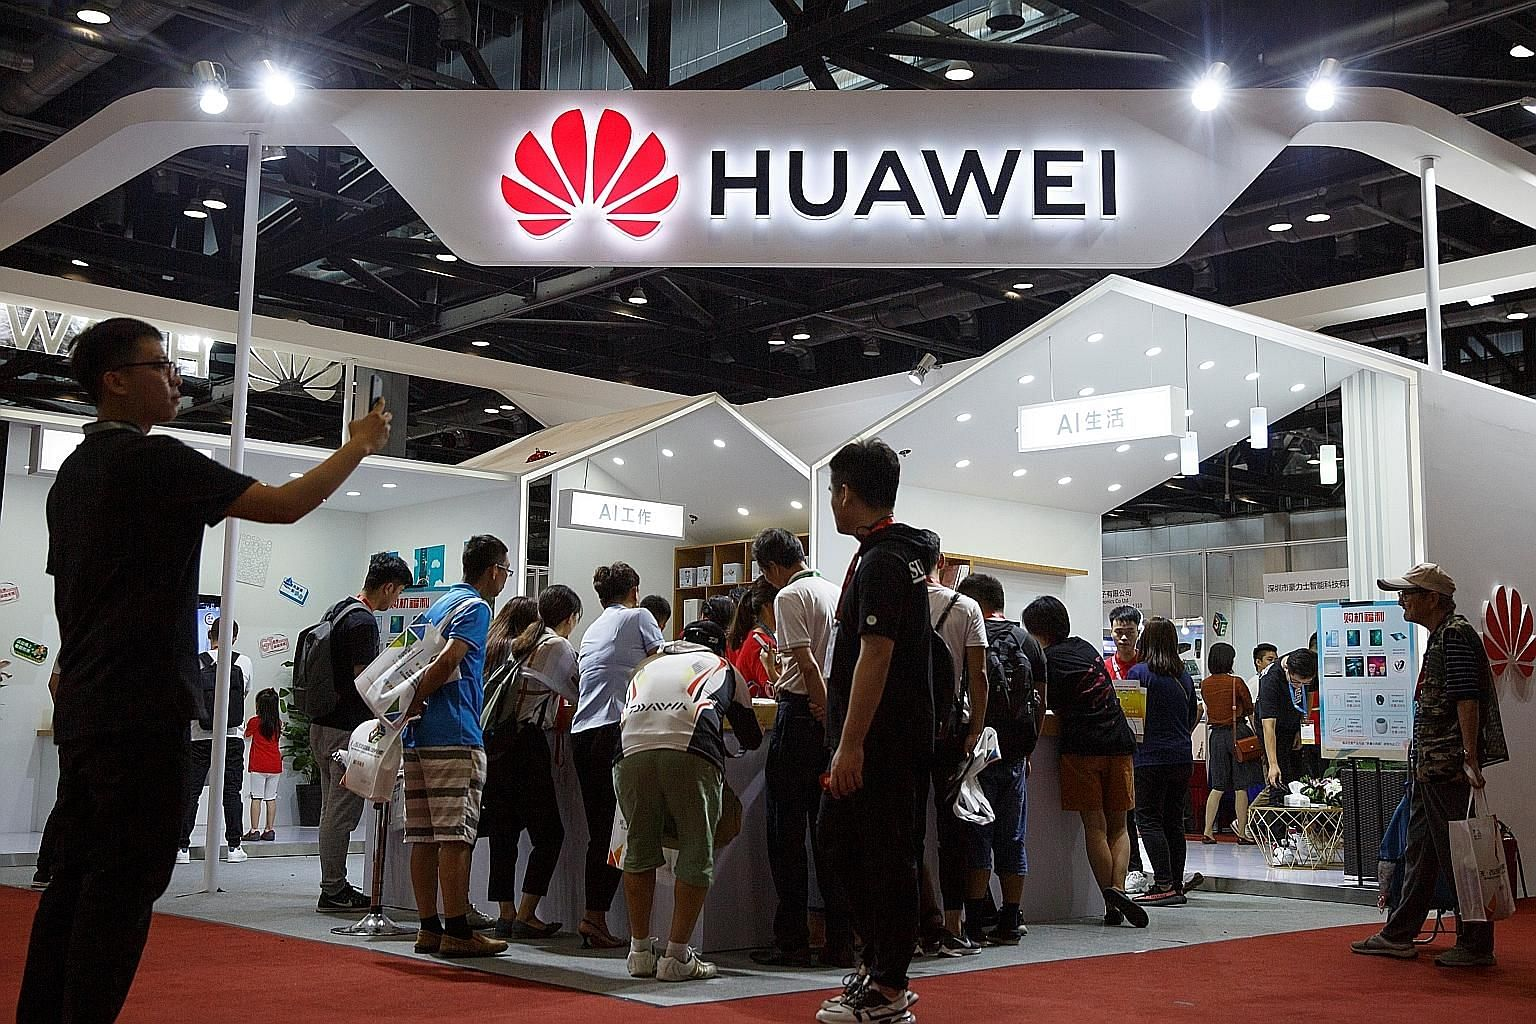 The Huawei booth at the International Consumer Electronics Expo in Beijing early this month. Going hard on Huawei was the wrong way for the United States to confront China over its grievances - even if many of them are entirely valid, says the writer